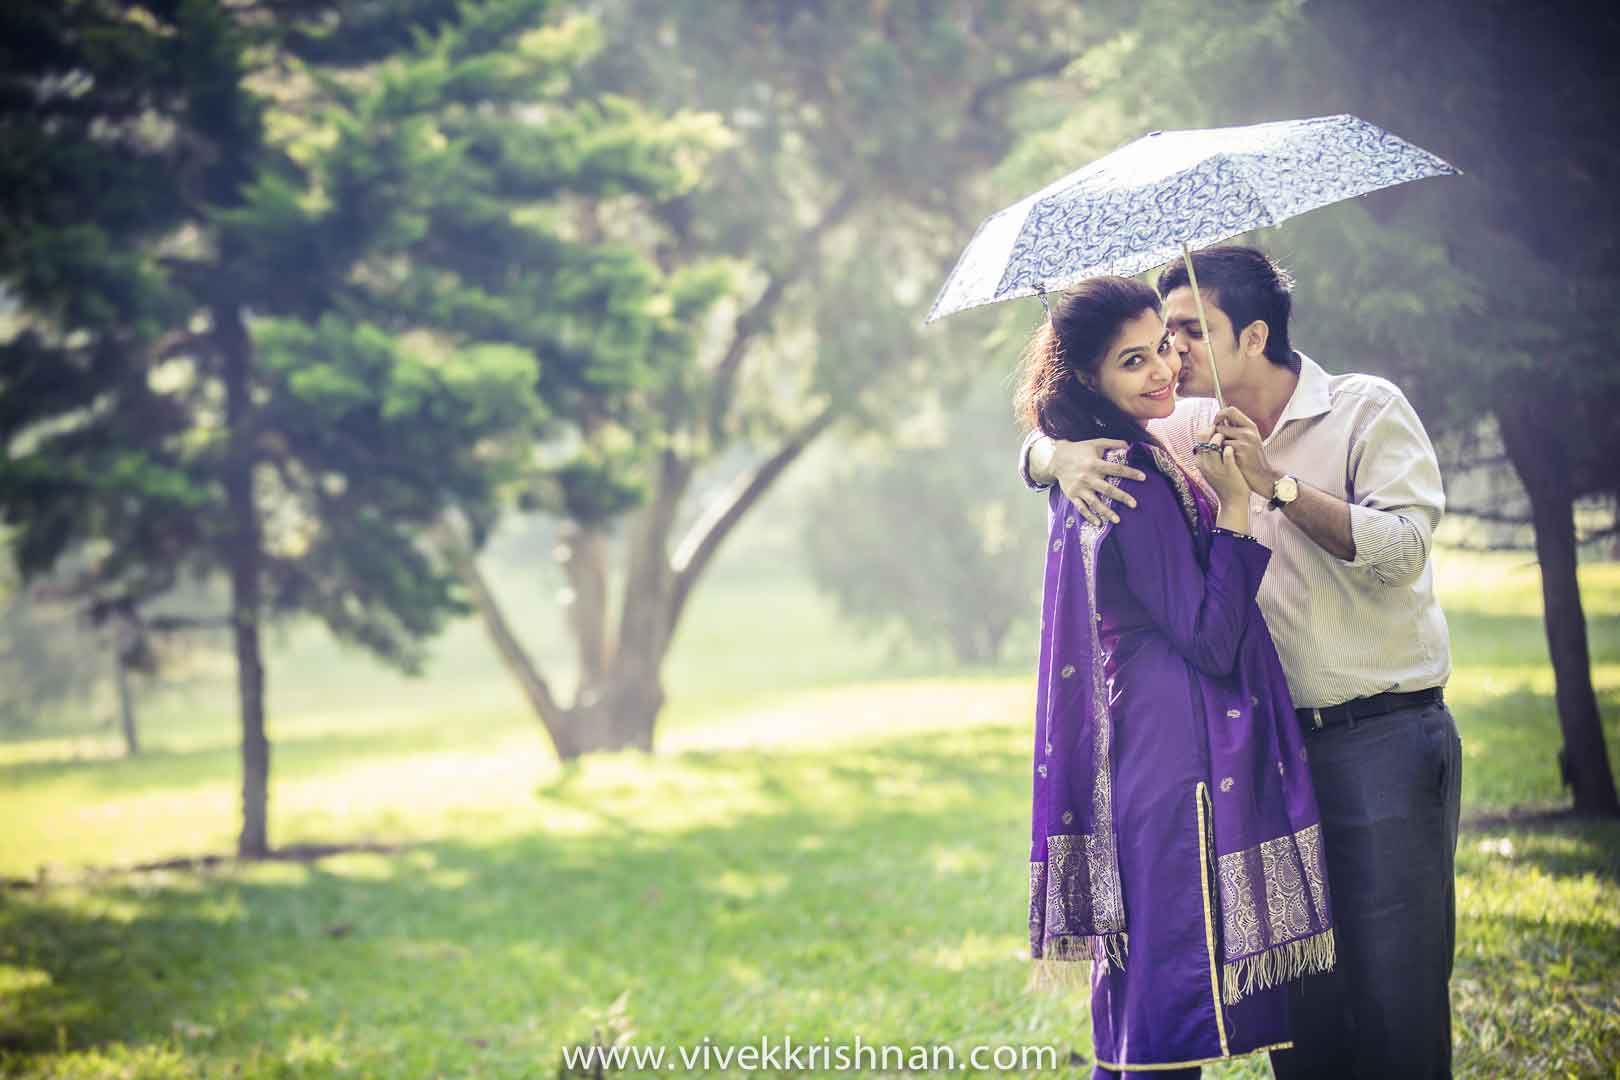 vivek krishnan arranged marriage get a pre wedding photo shoot to